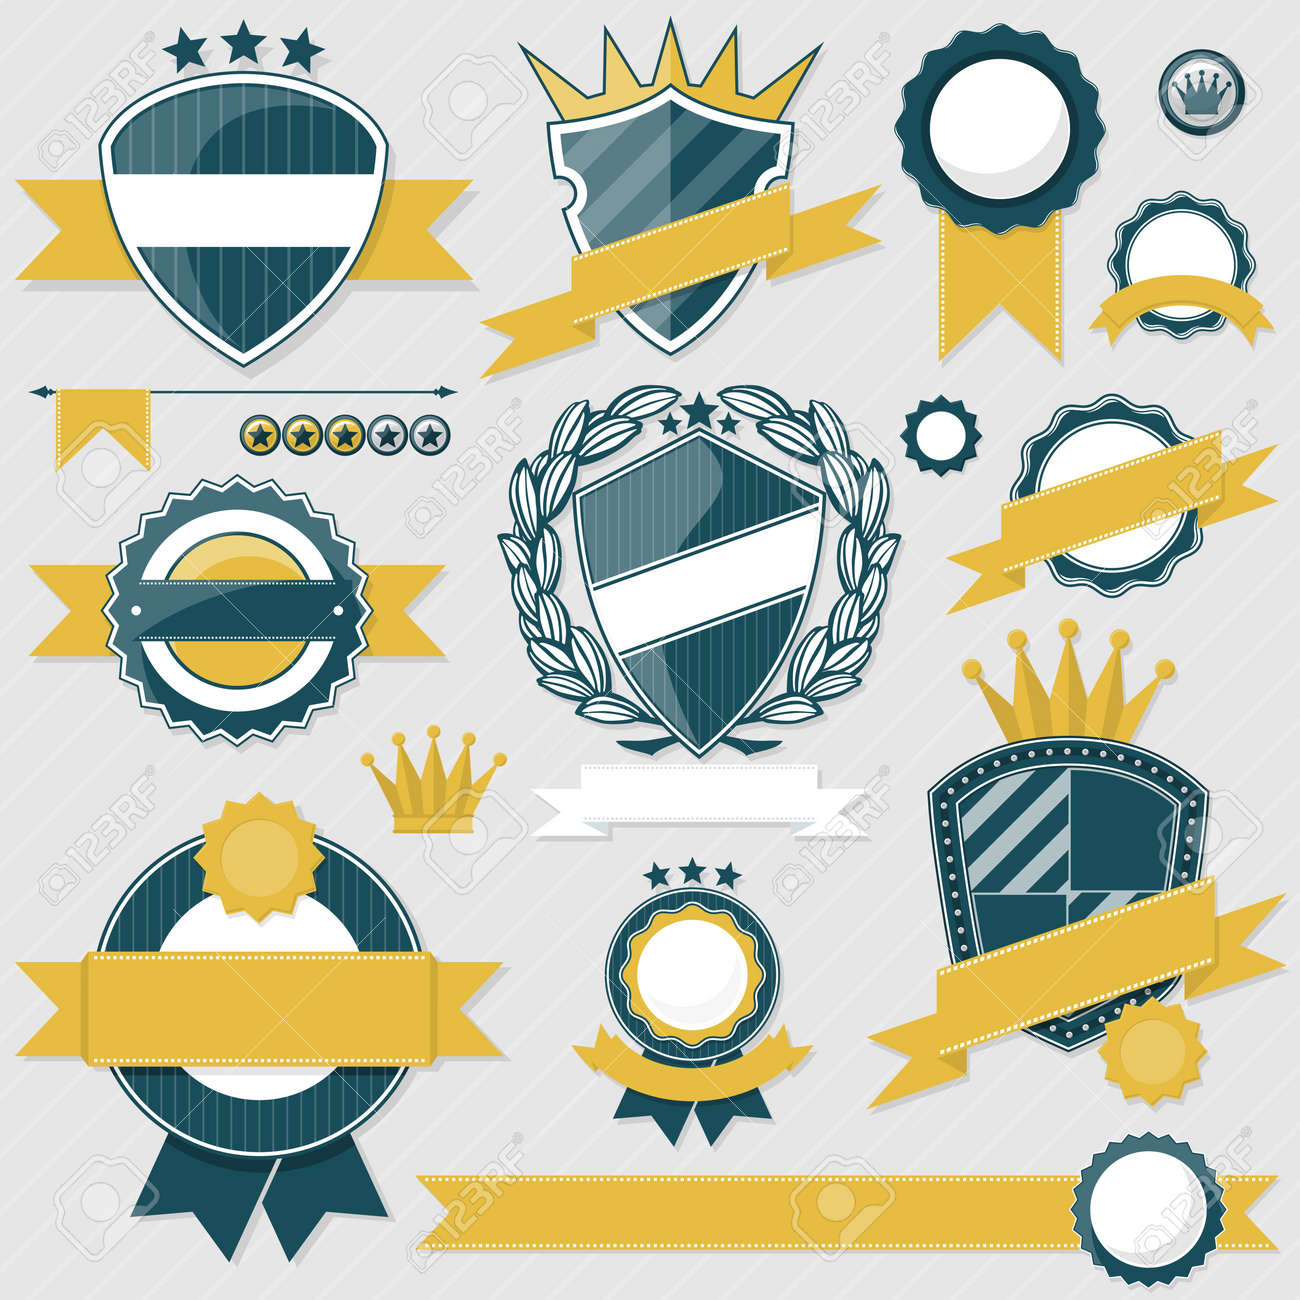 emblem blank labels and ribbons collection for your designs, in vector format very easy to edit, individual objects, solid colors, no gradients Stock Vector - 21030971